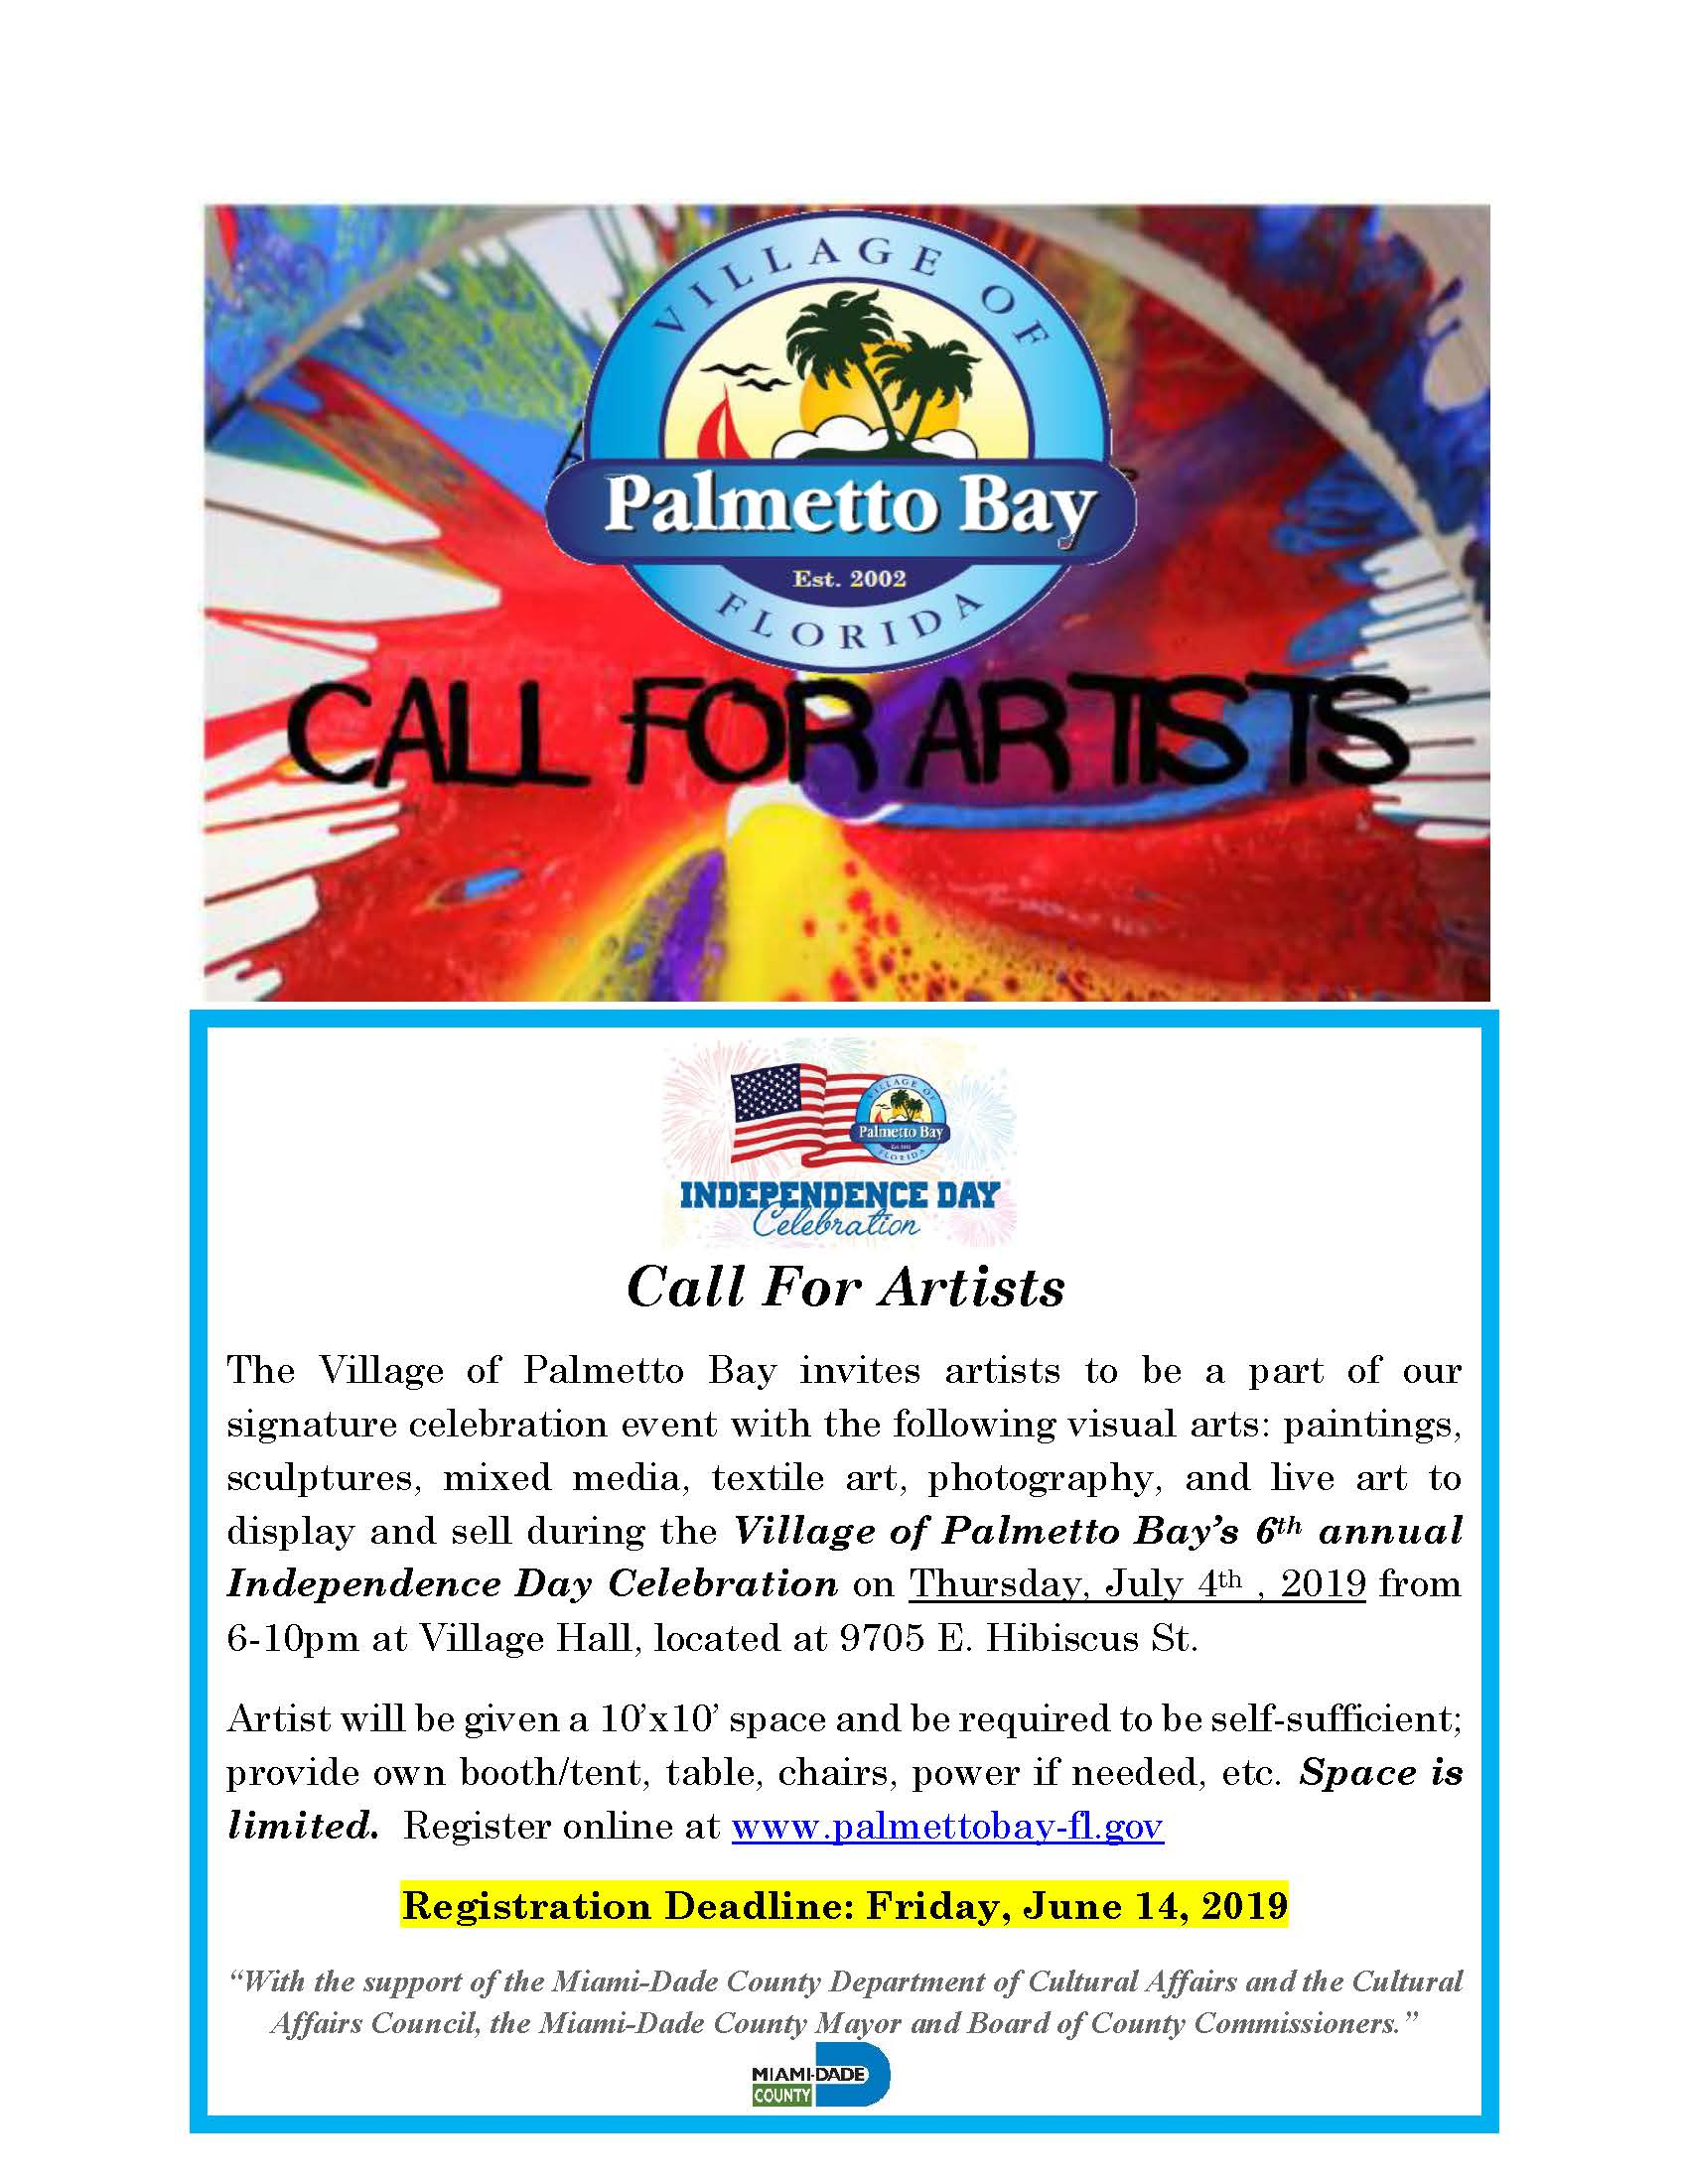 Call For Artists The Village of Palmetto Bay invites artists to be a part of our signature celebrati